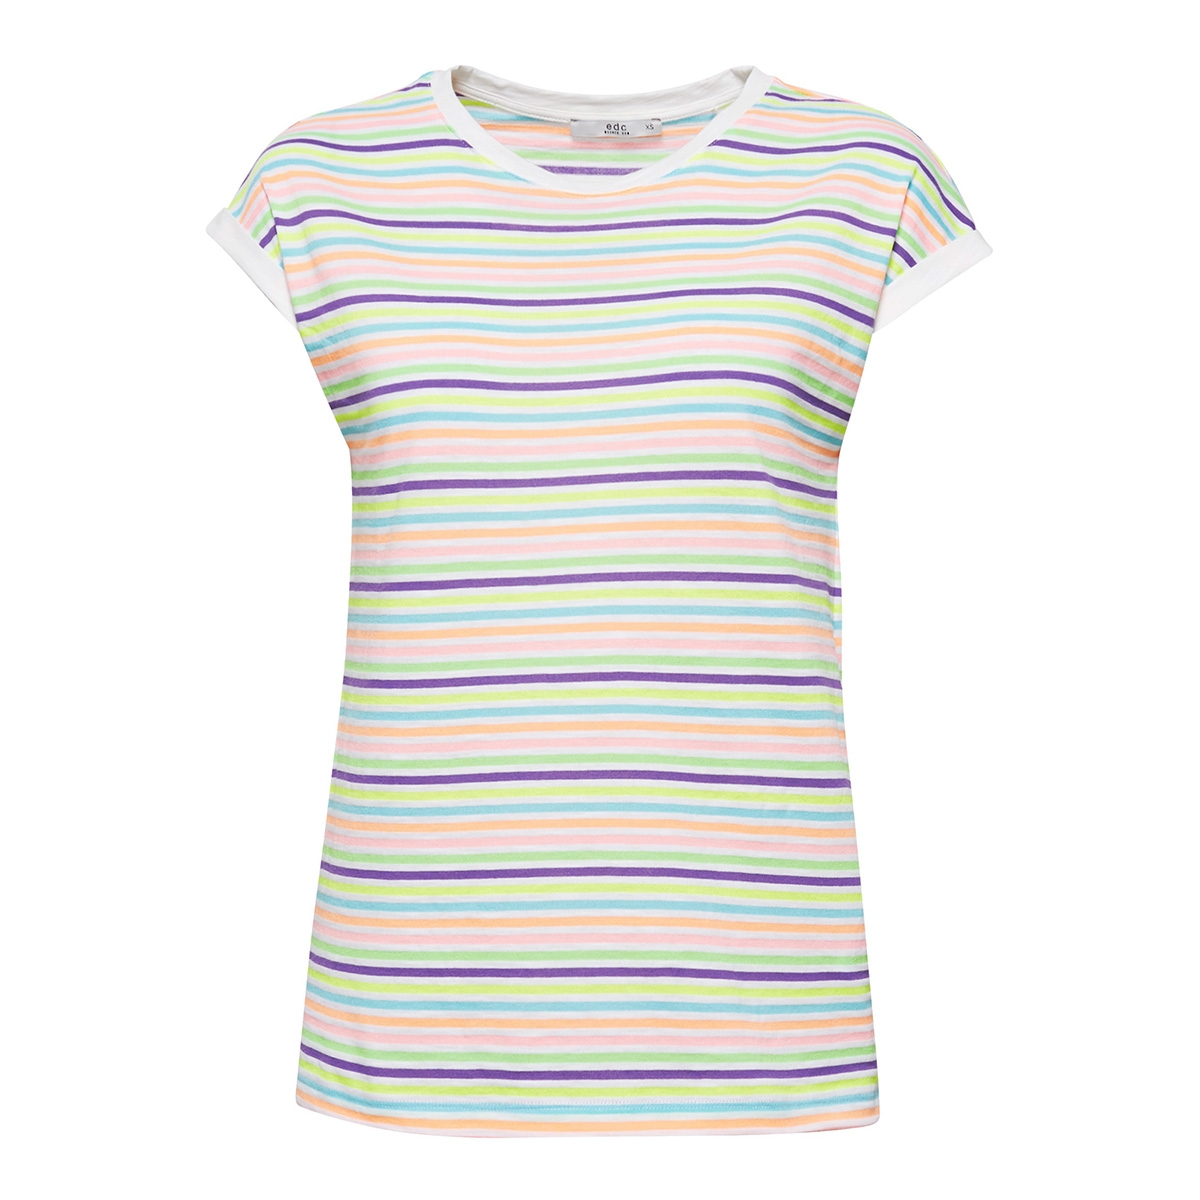 t shirt met strepen in neon look 069cc1k065 edc t-shirt c111